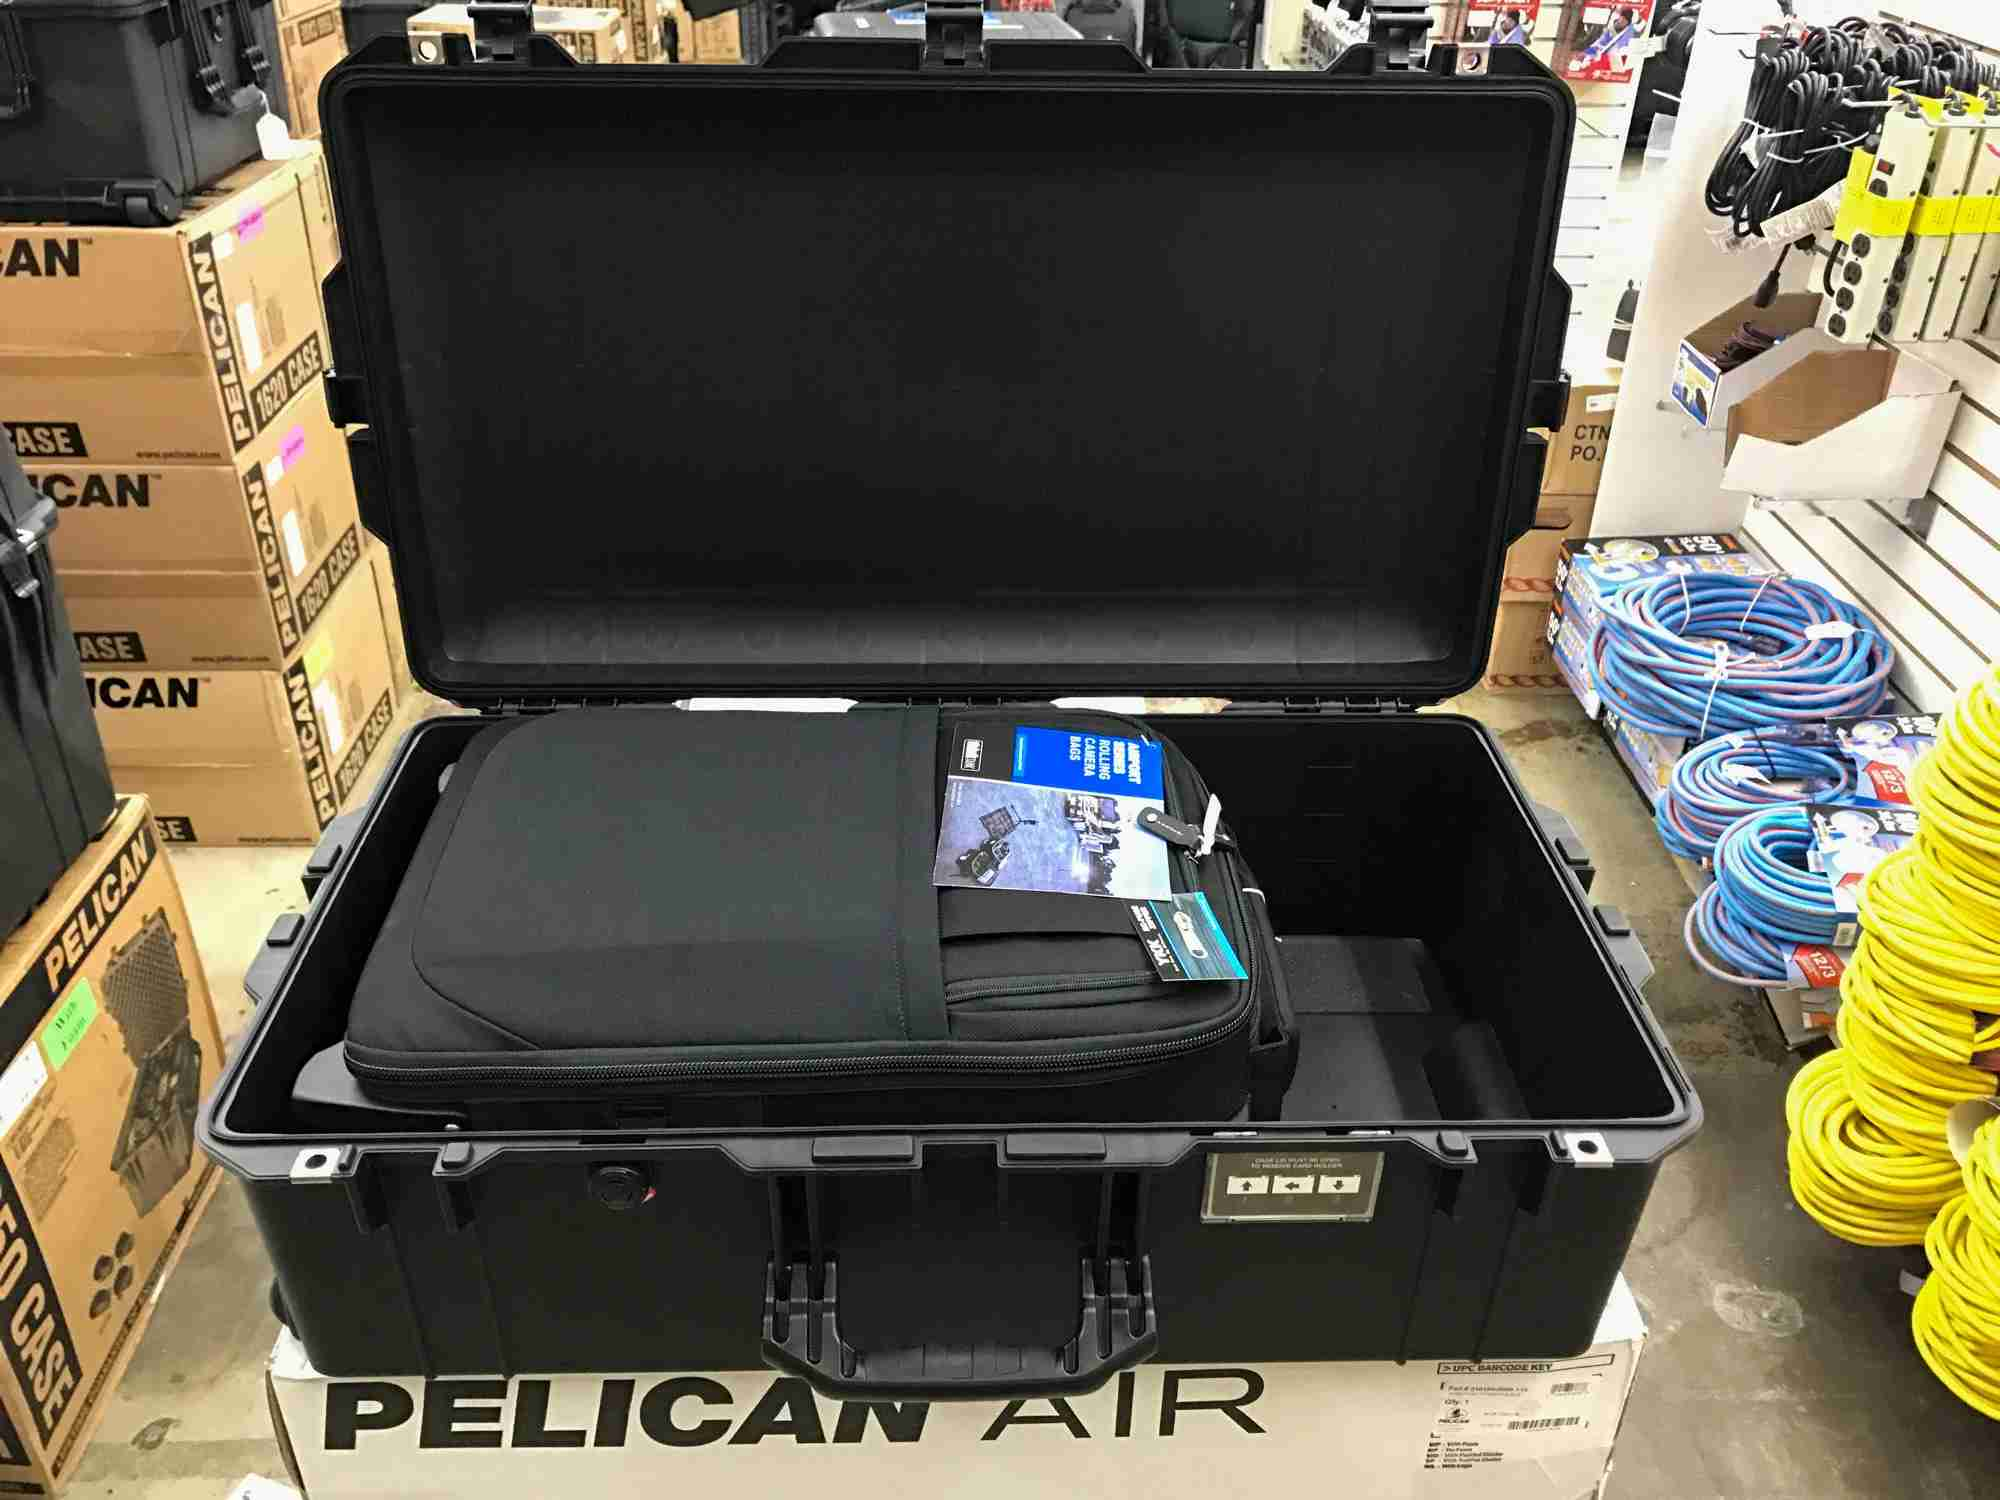 The carry-on-compliant Think Tank Photo Airport International 3.0 roller inside of a Pelican Air 1615 case, which must be checked. The Air case design is significantly lighter, which means more gear can be checked. Image courtesy of the author.